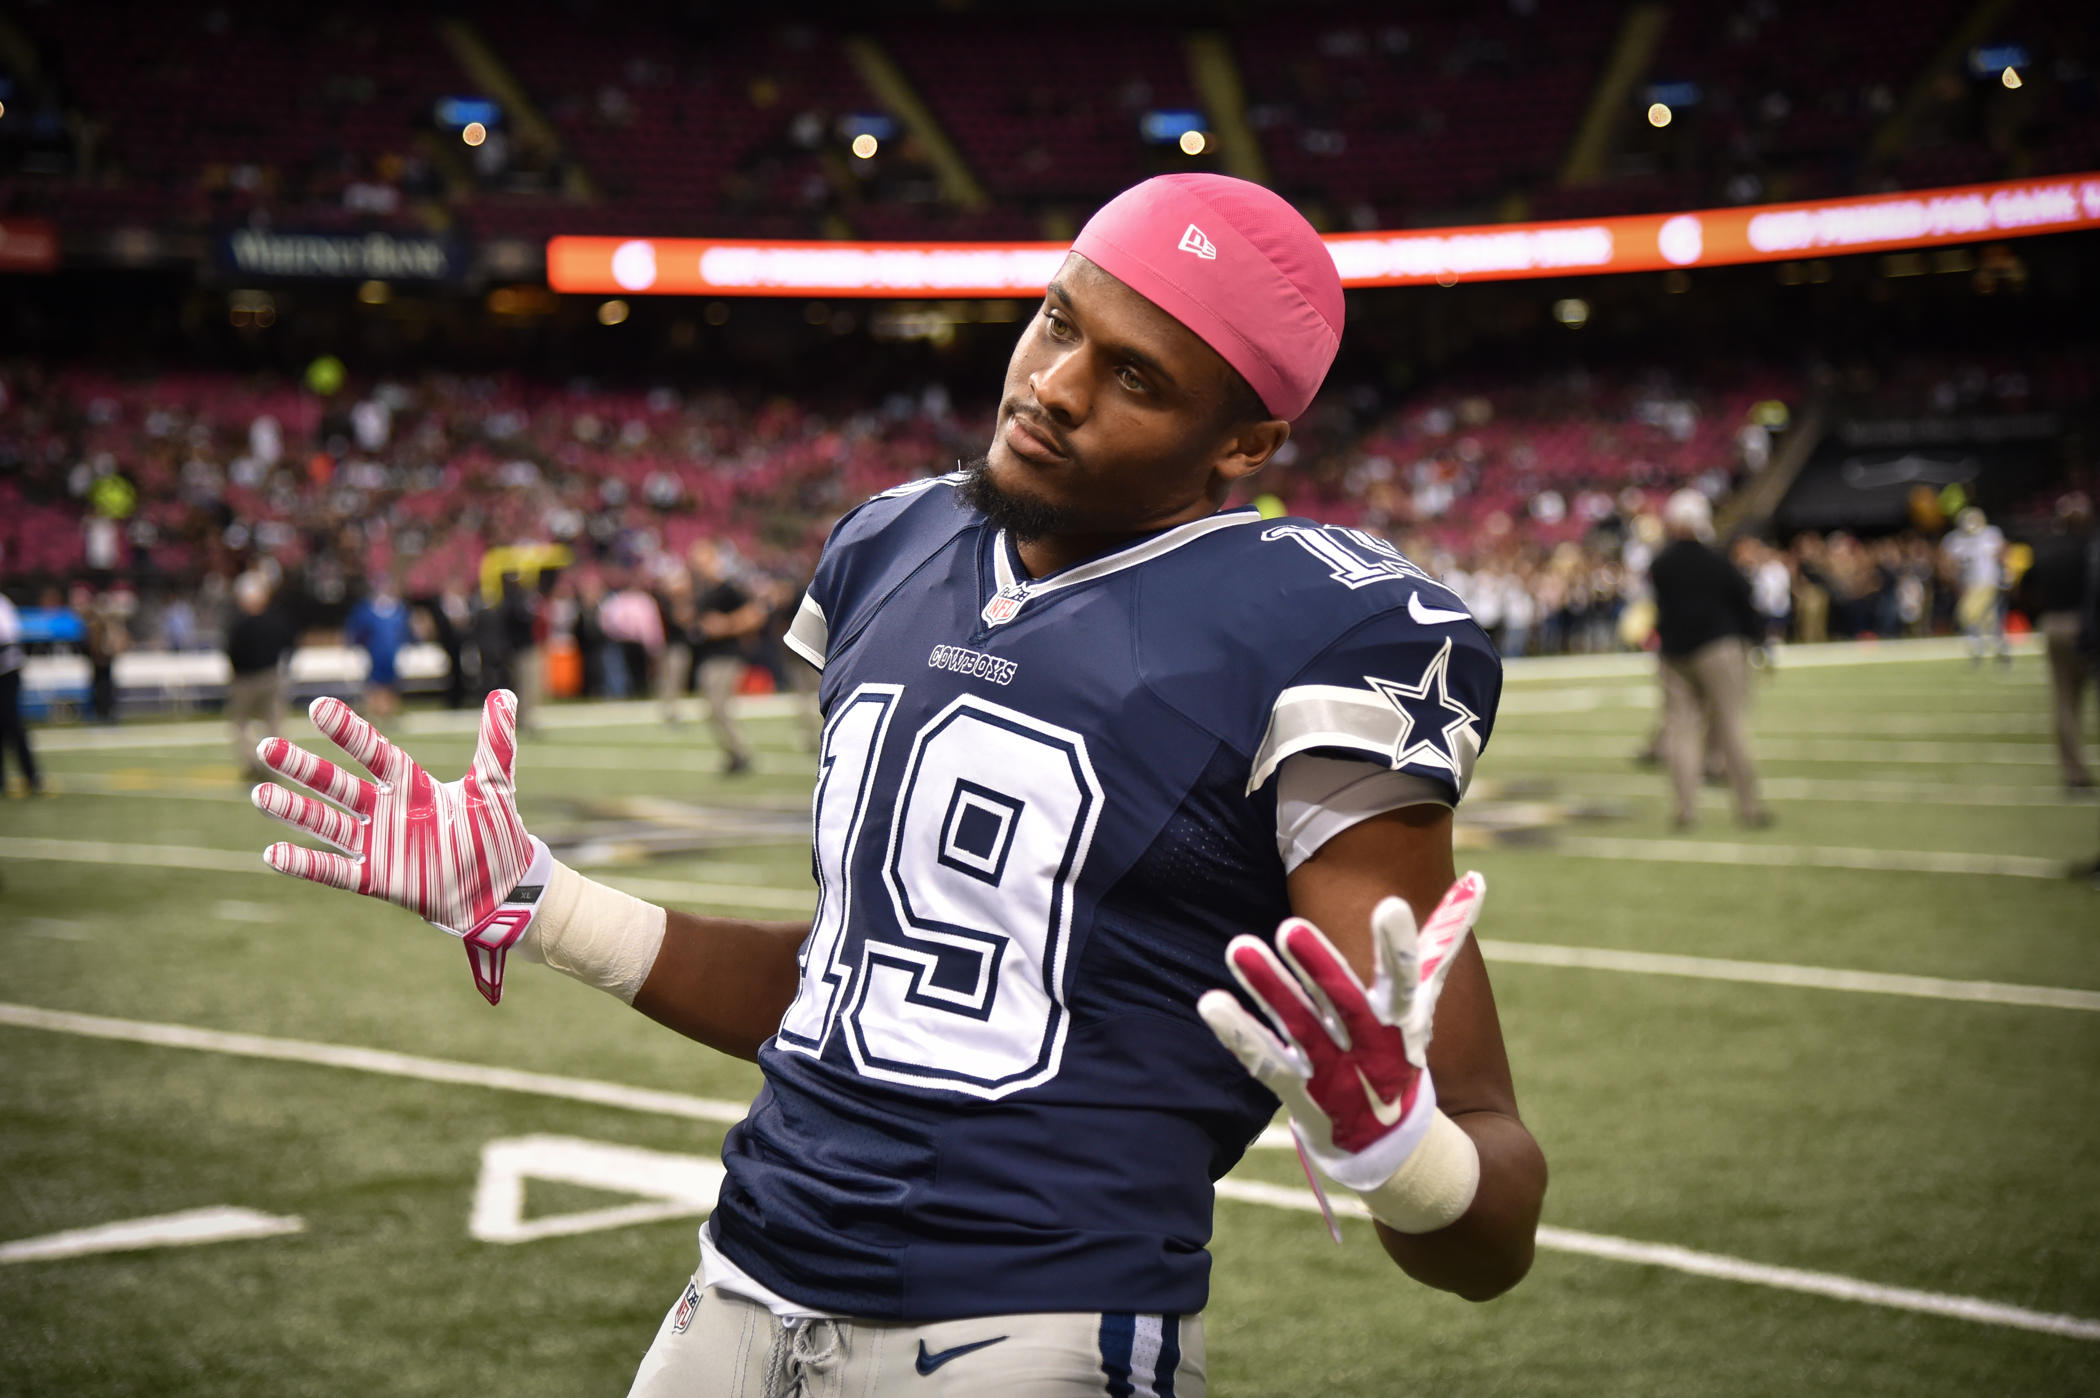 Cowboys Headlines - Does Brice Butler Deserve A Bigger Offensive Role?